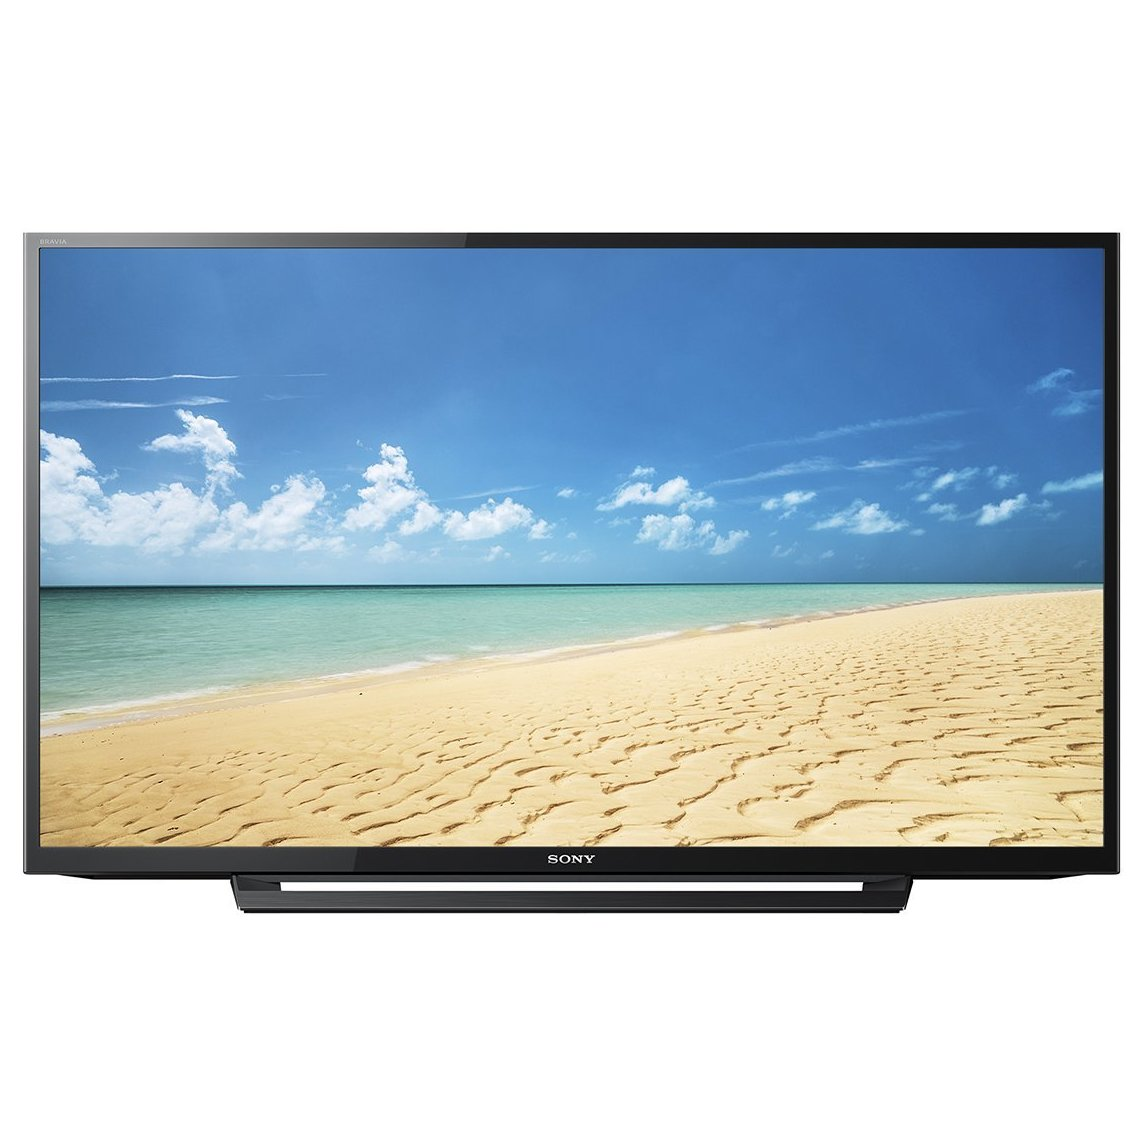 Sony 32W600D HD Smart LED Television 32inch price in Oman | Sale on ...